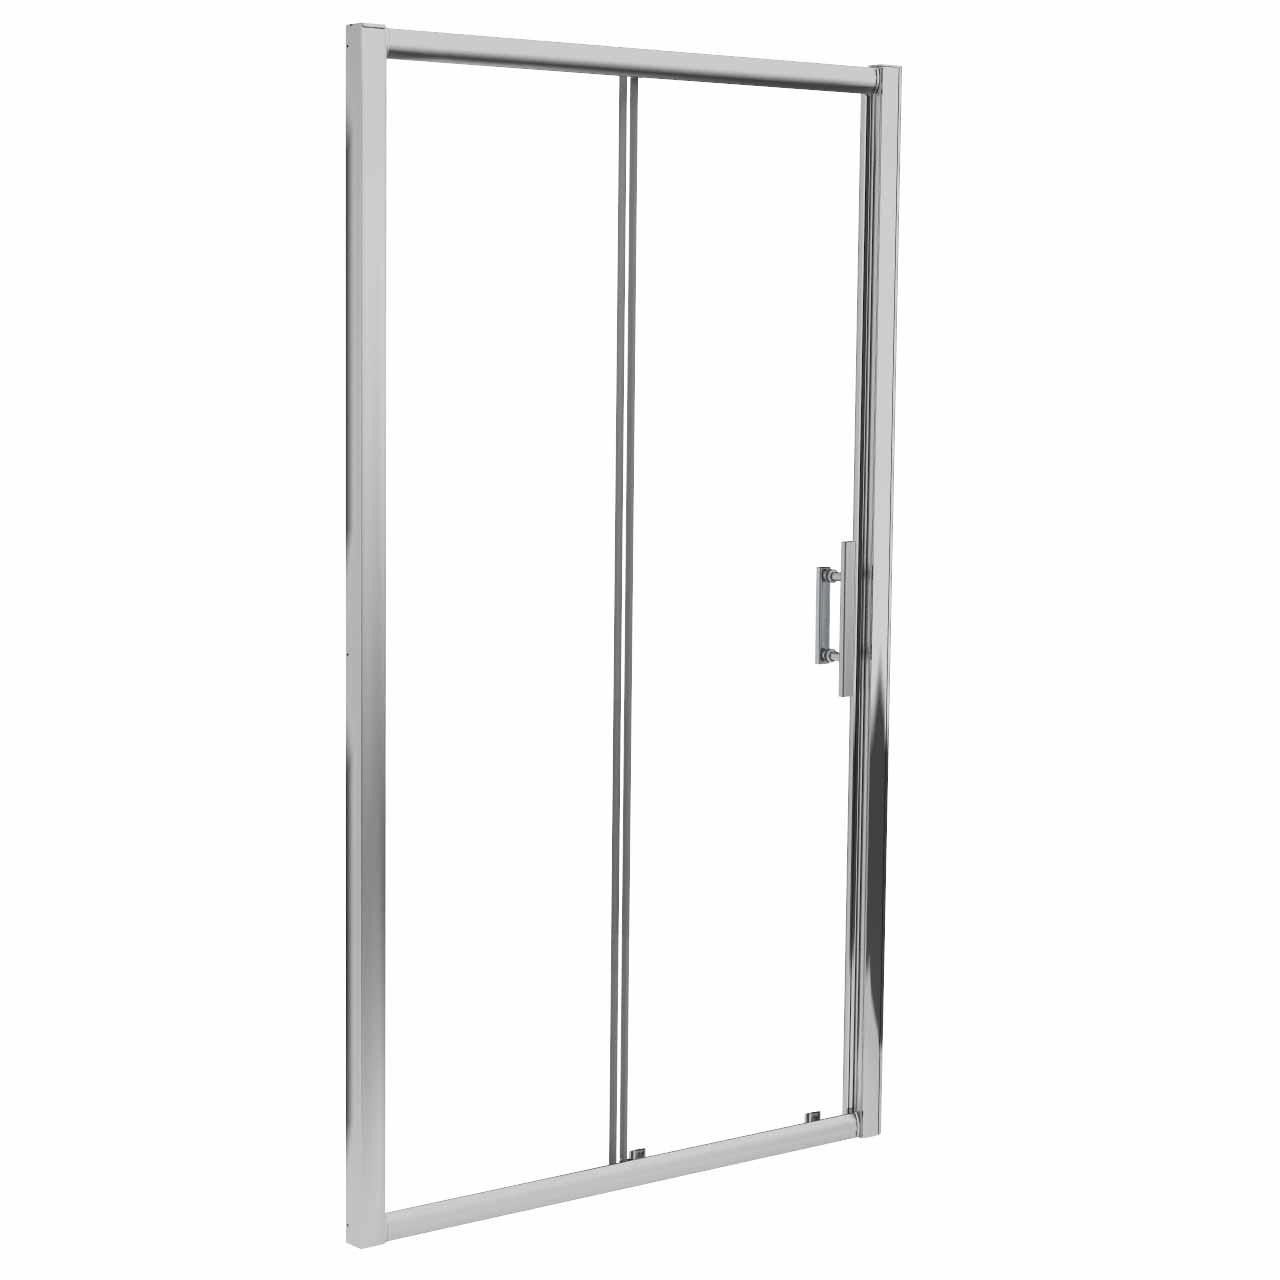 Series 8 Plus 1200 x 900 Sliding Door Enclosure